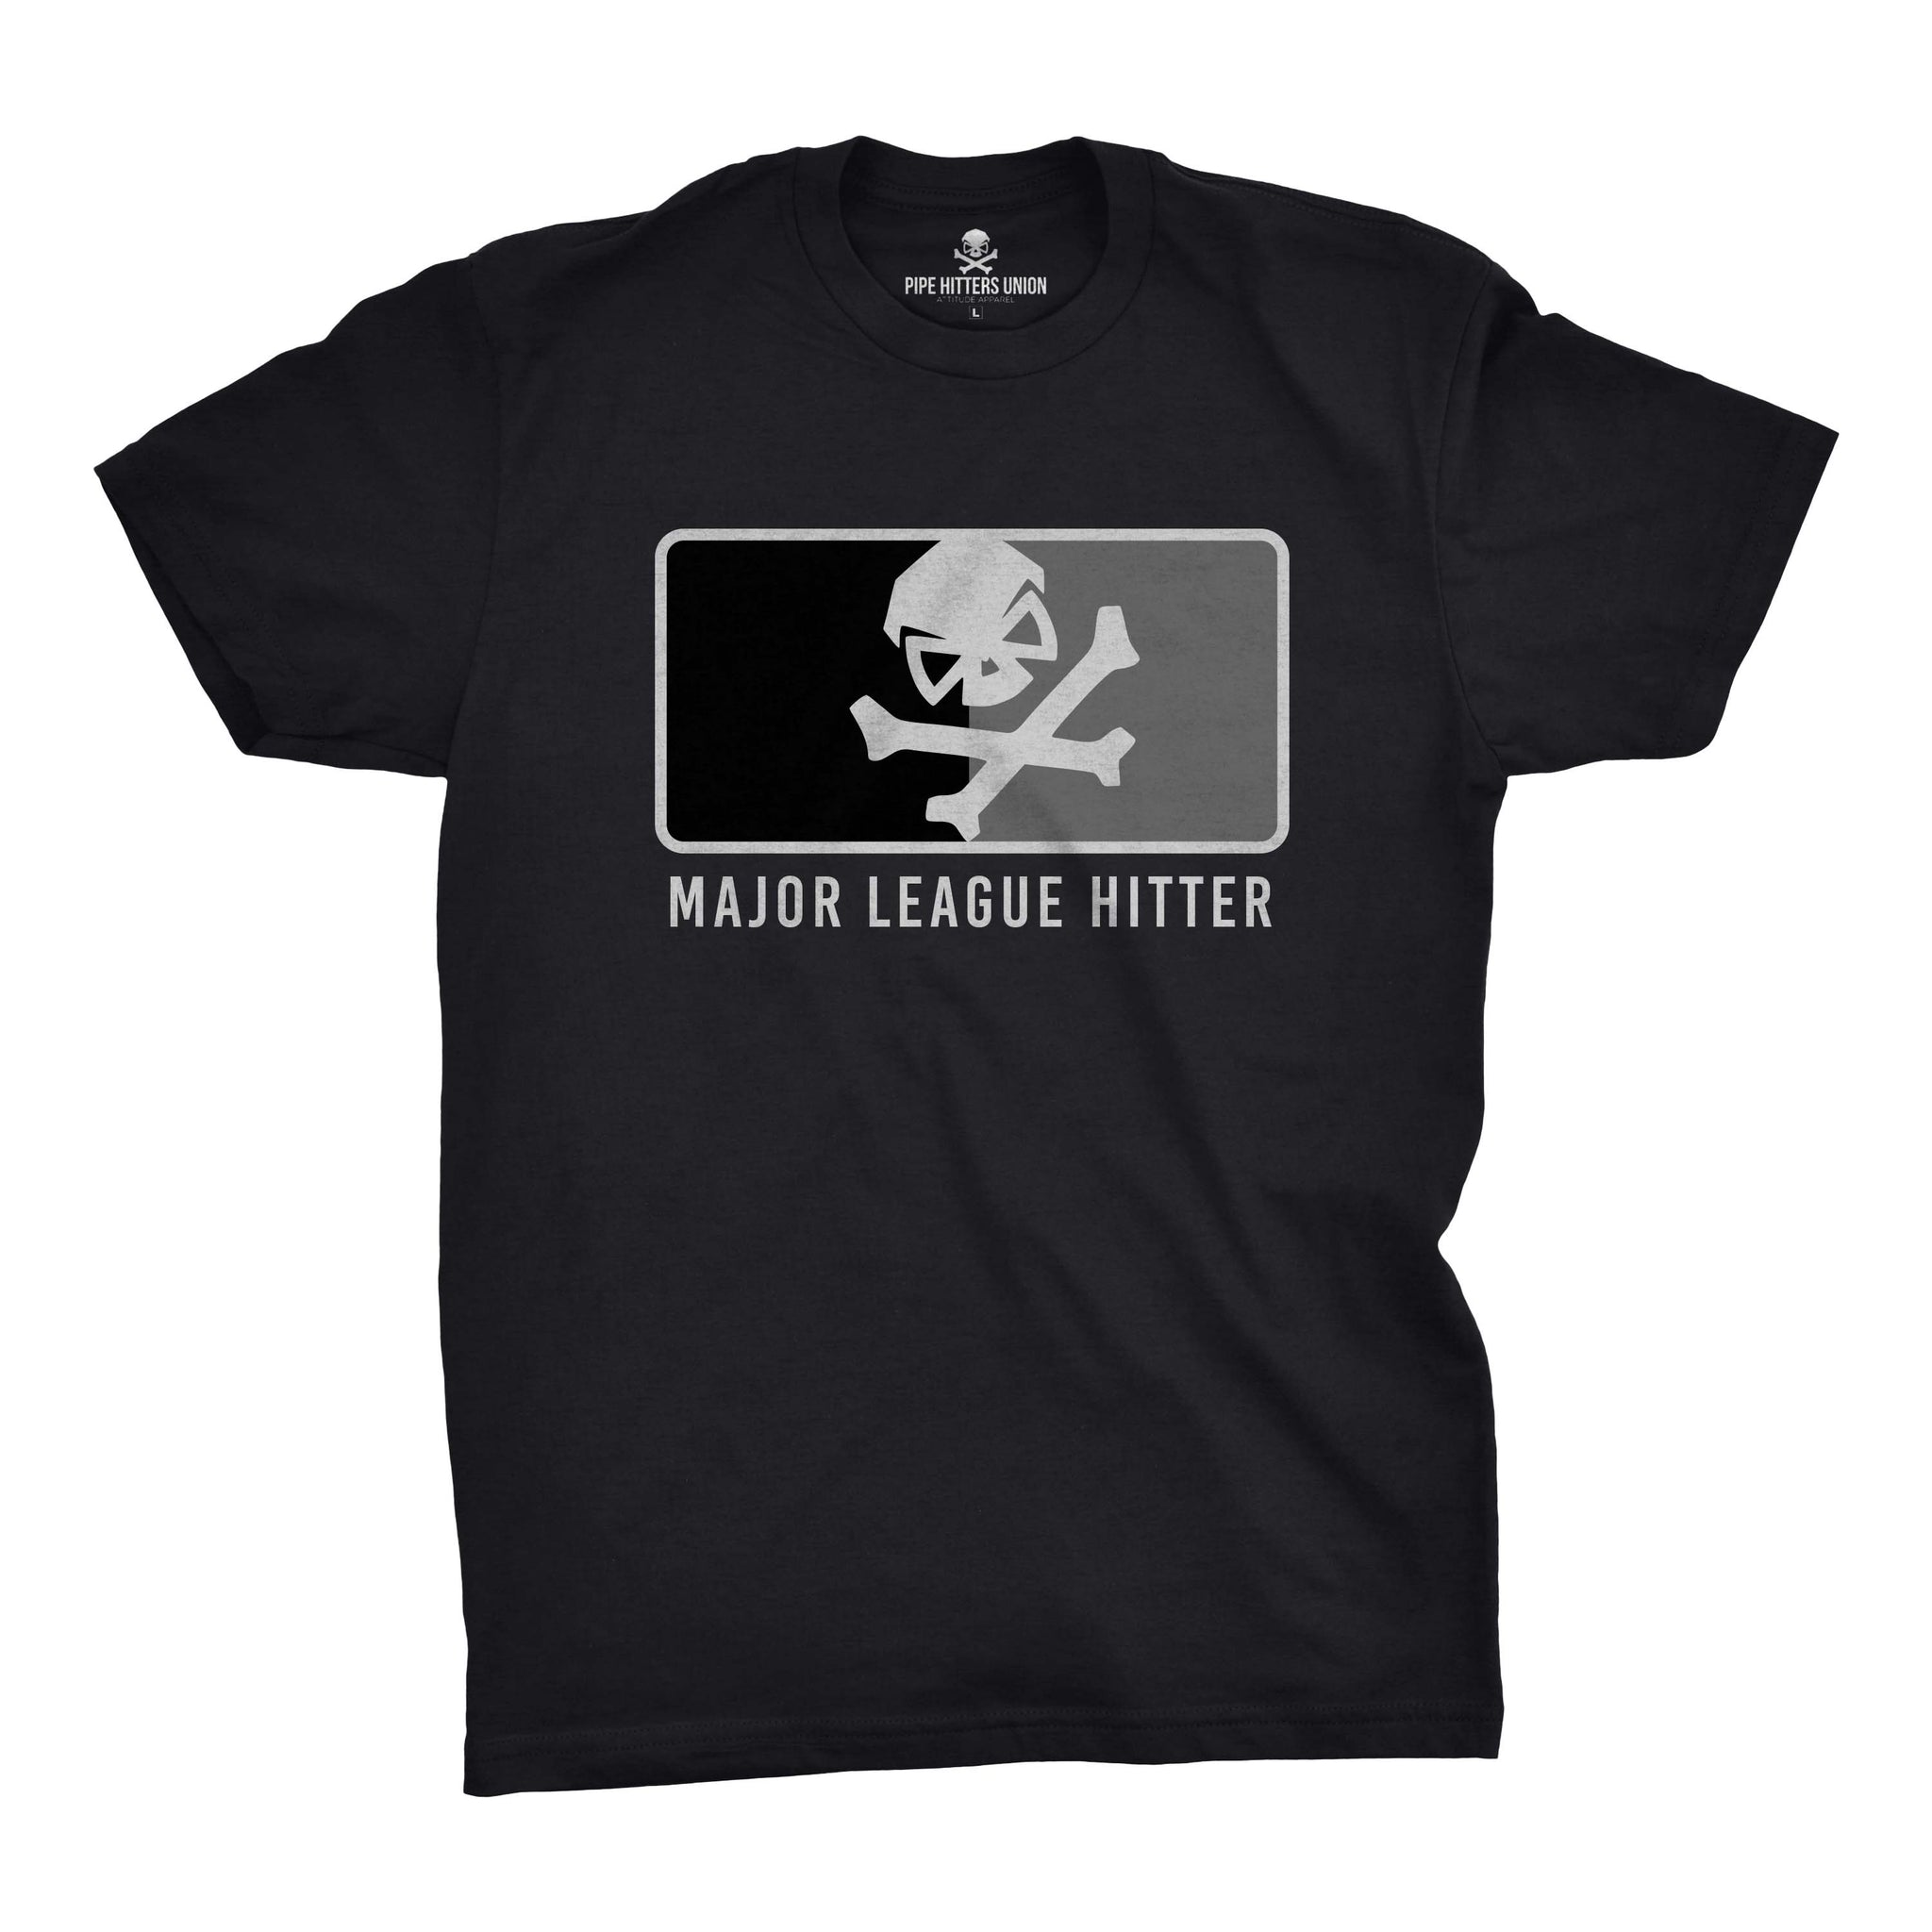 Major League Hitter - Black/Subdued - T-Shirts - Pipe Hitters Union